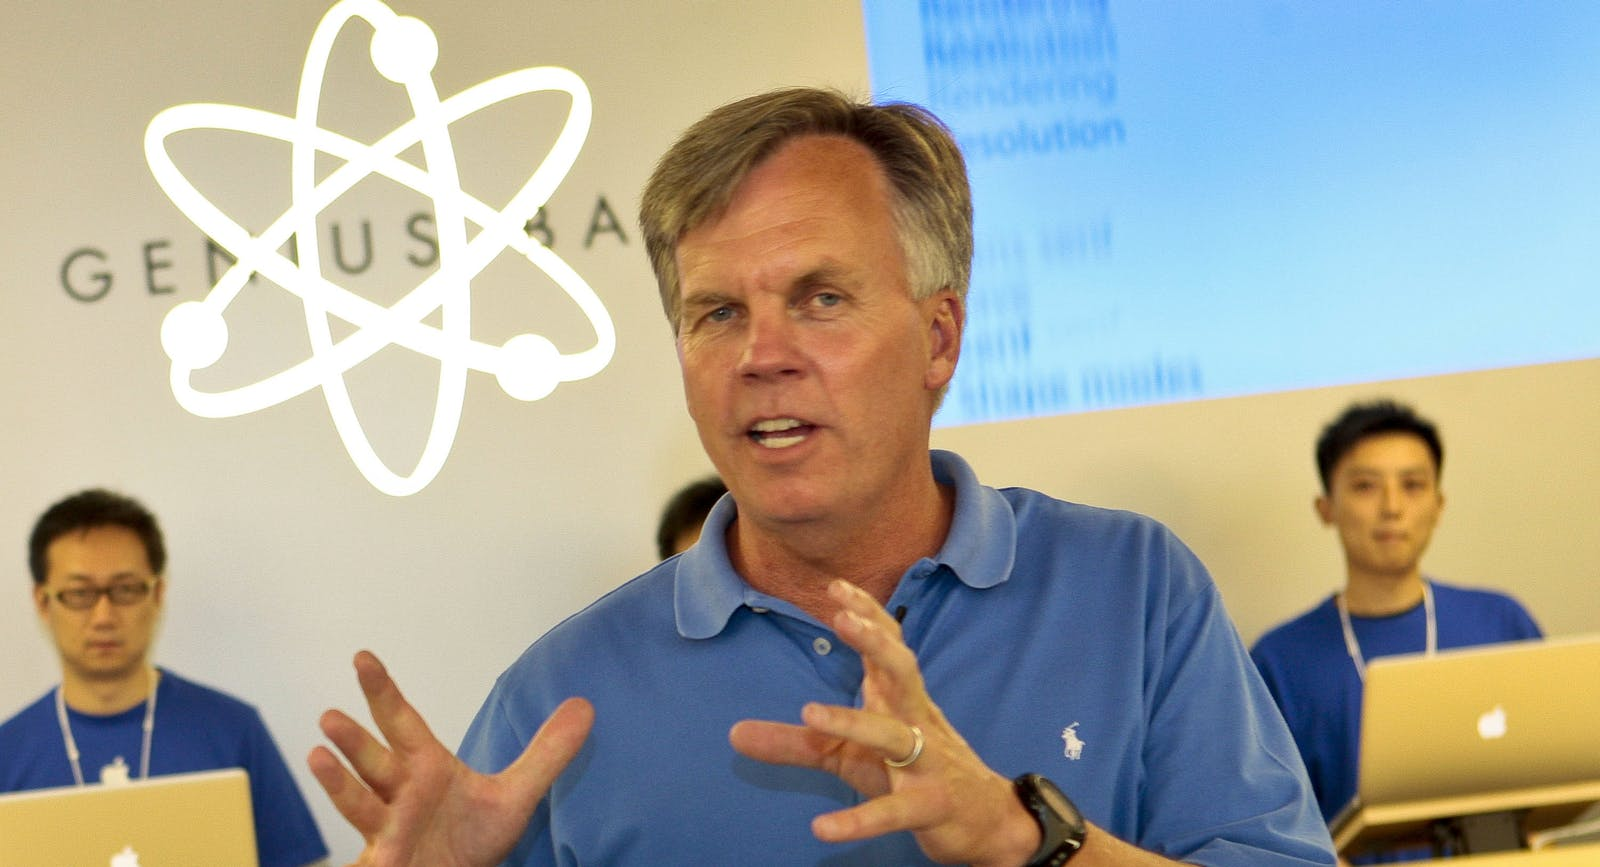 Ron Johnson in an Apple Store. Photo by Associated Press.